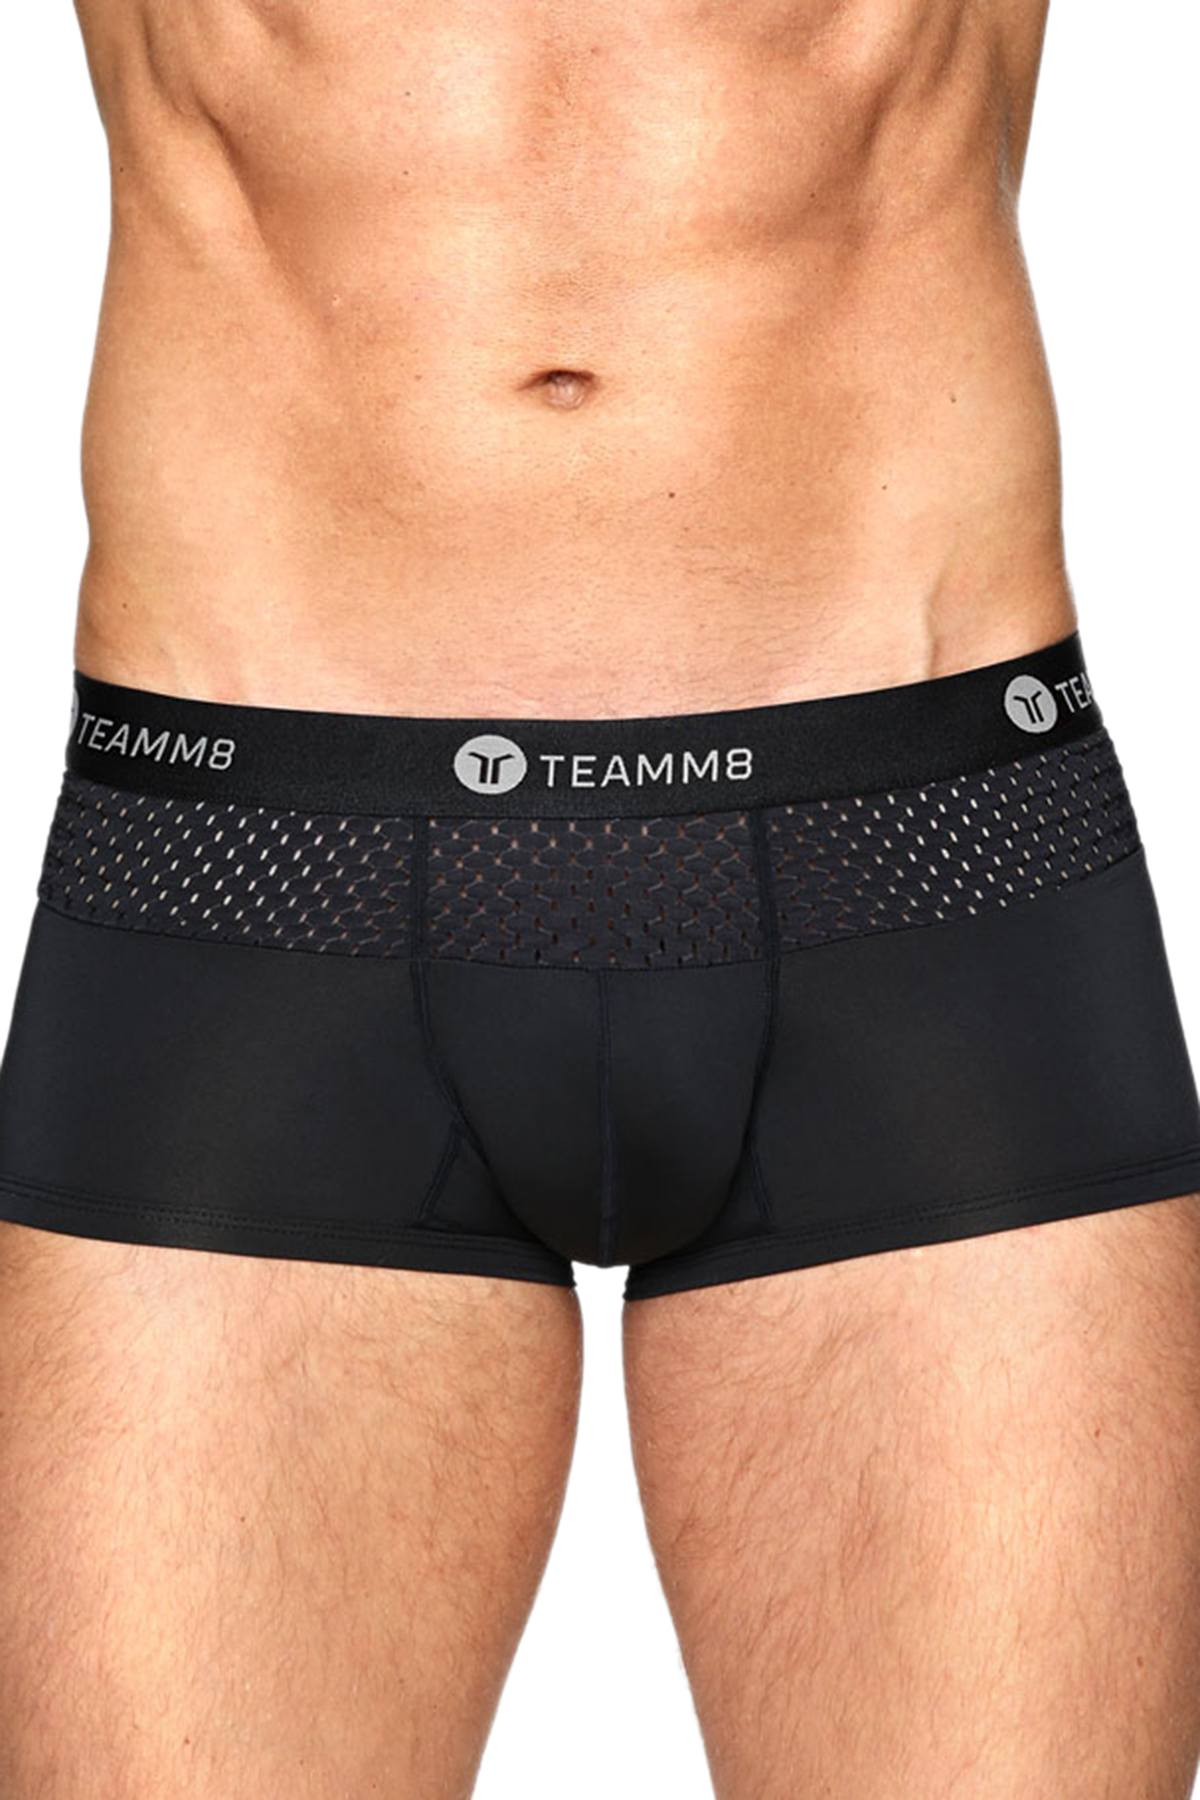 Teamm8 Black Crown Boxer Brief